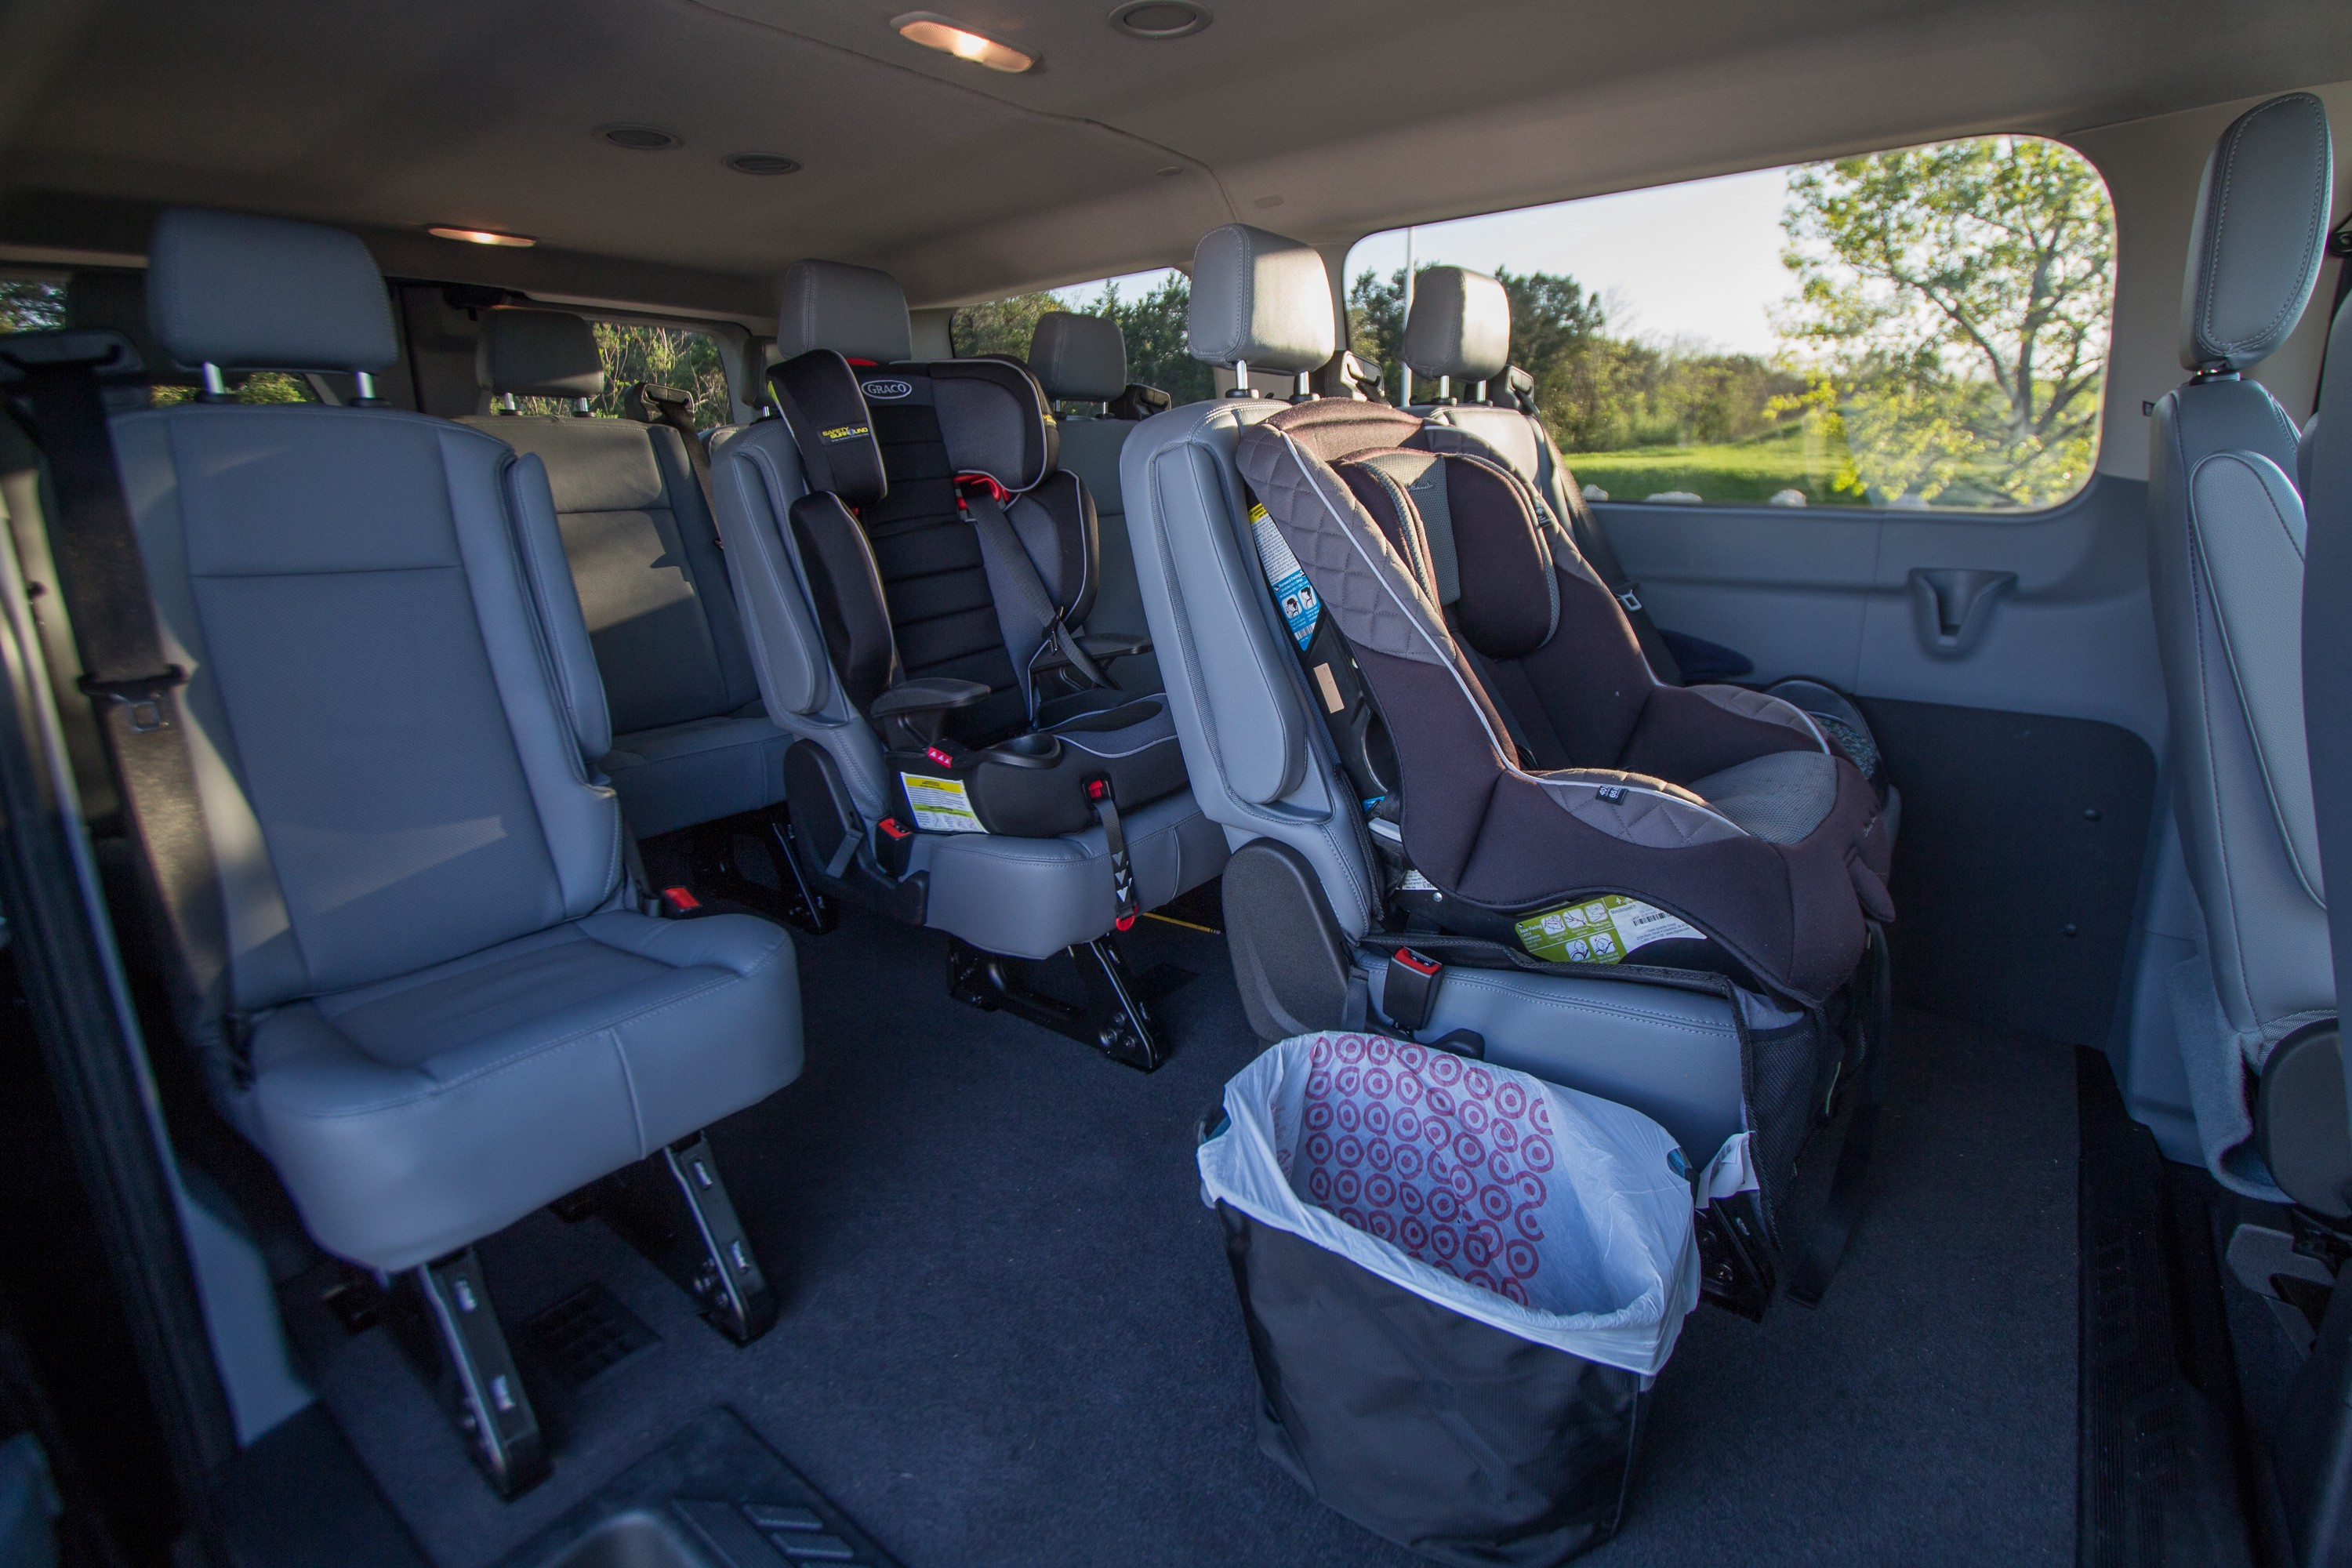 2020 Ford Transit Review Large Family Edition By Marshall Hines Medium